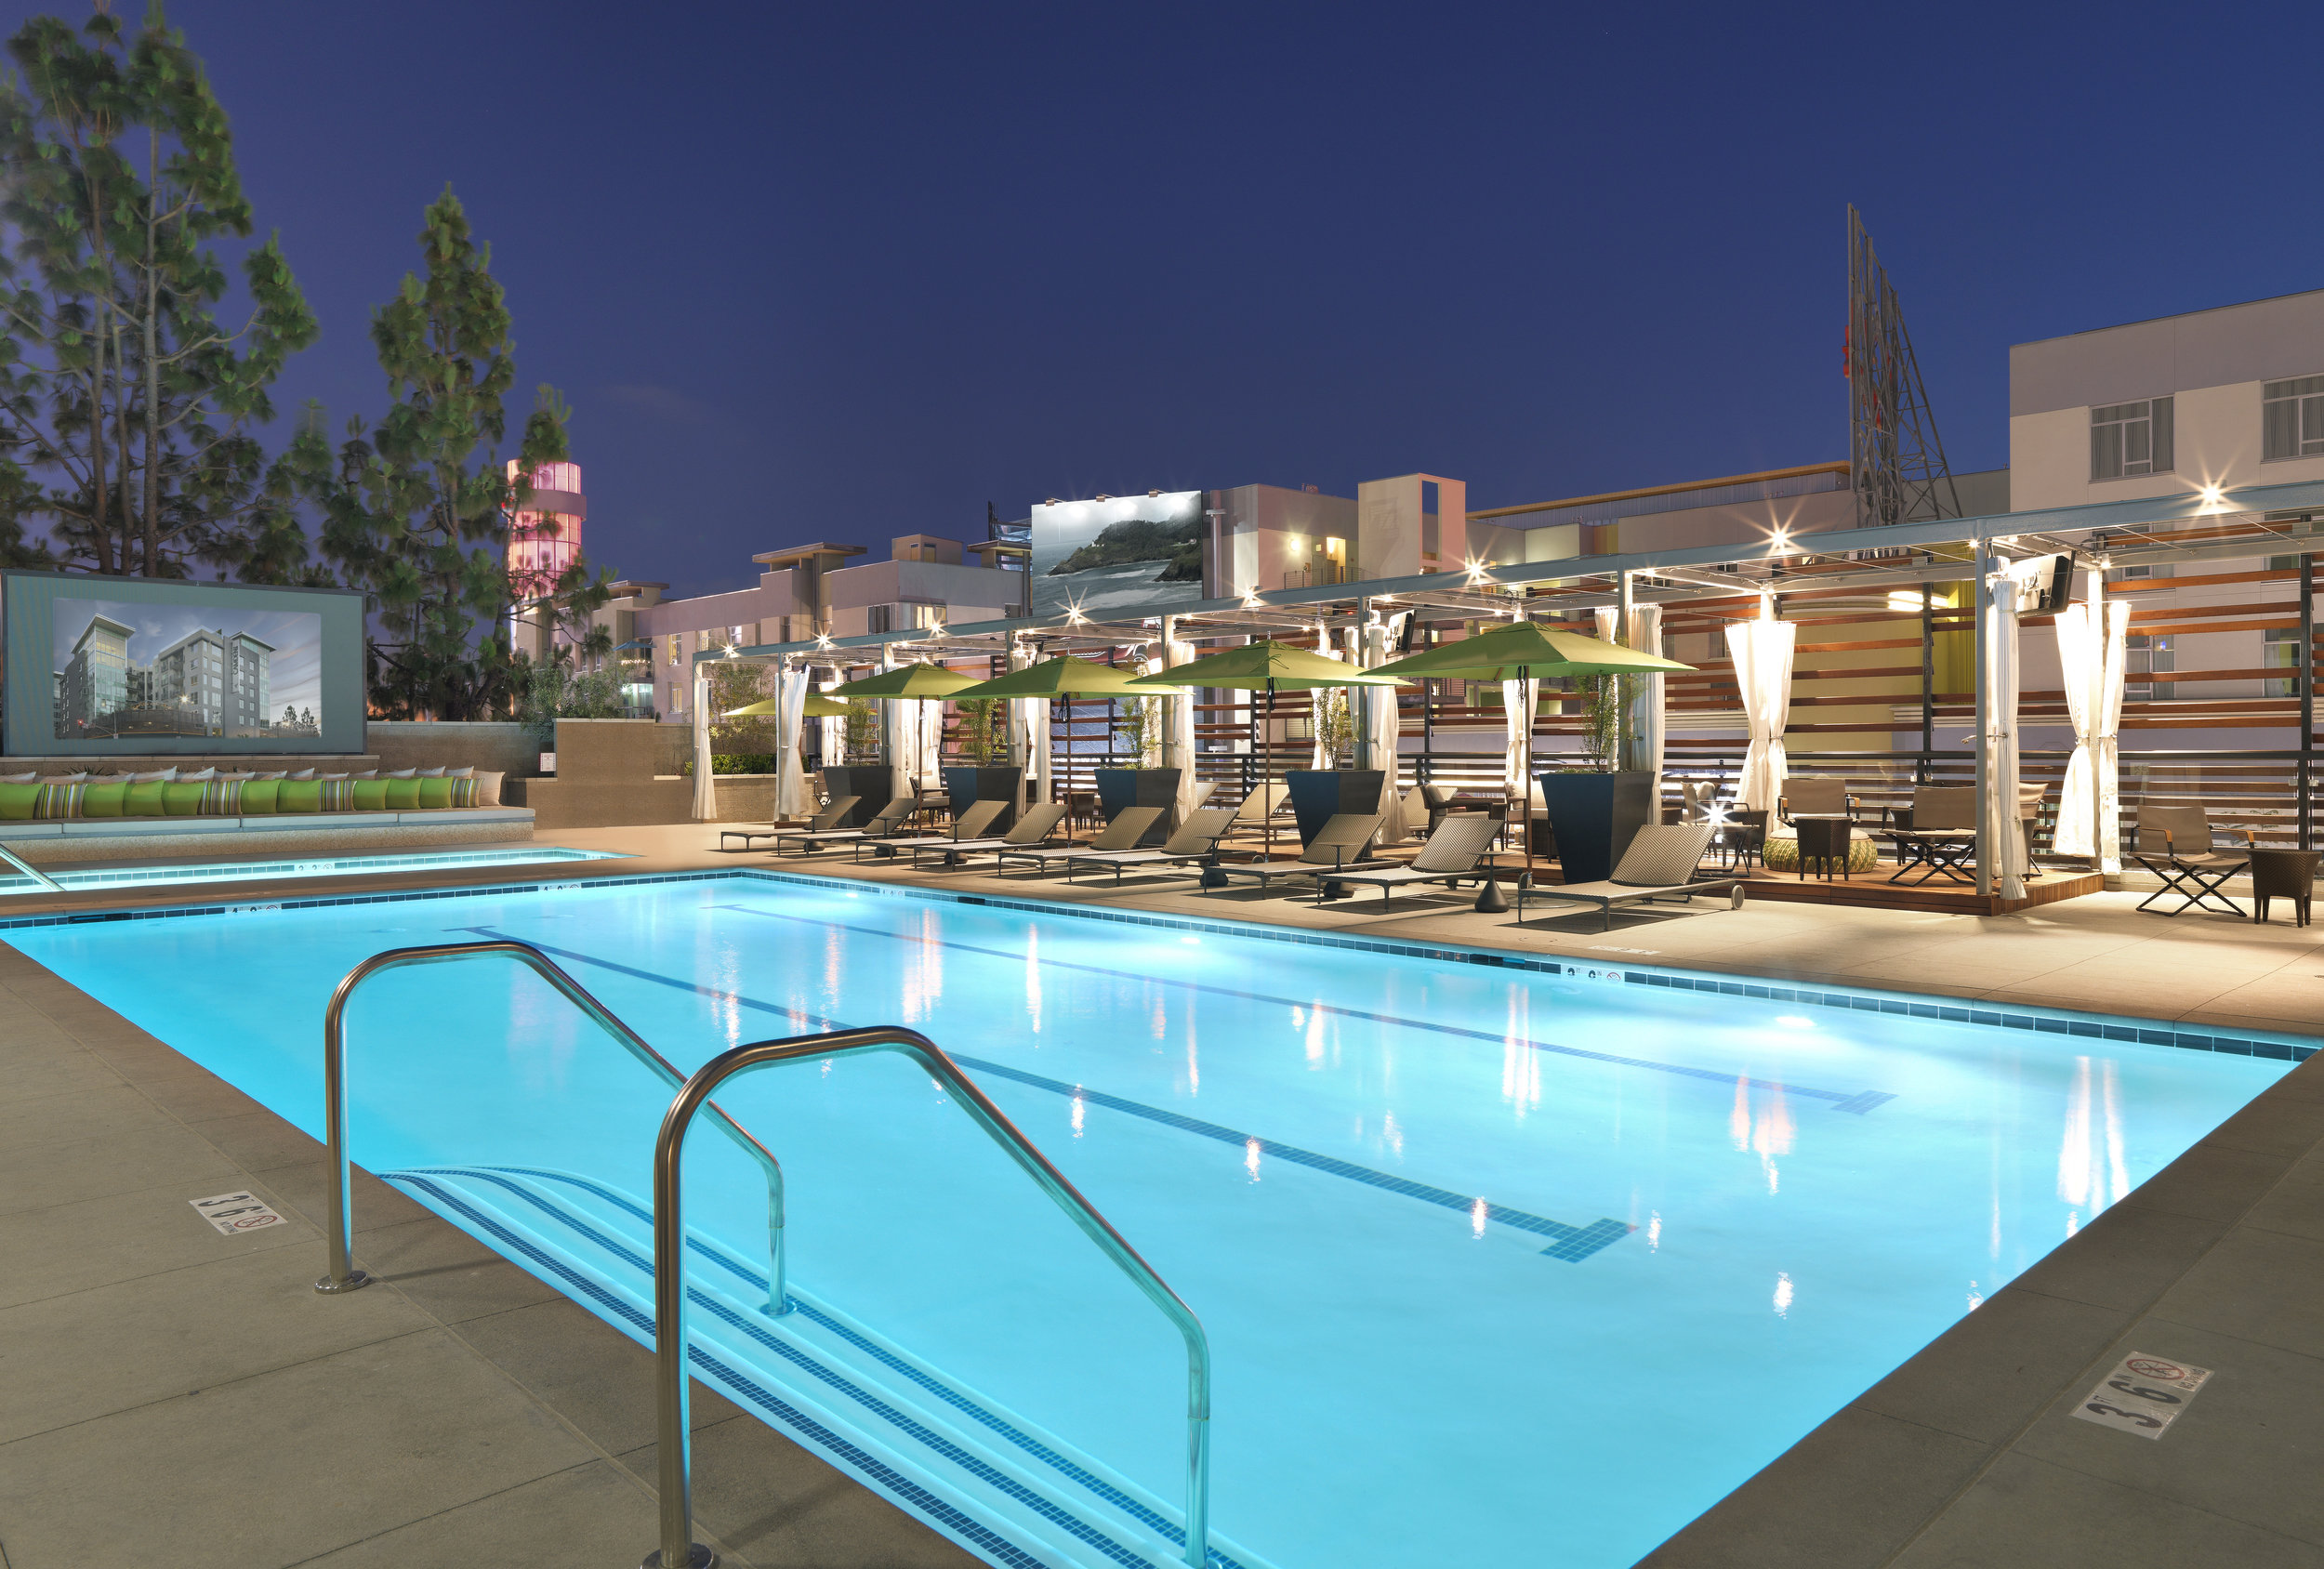 The_Camden_Hollywood_Apartments_Pool_Night.jpg